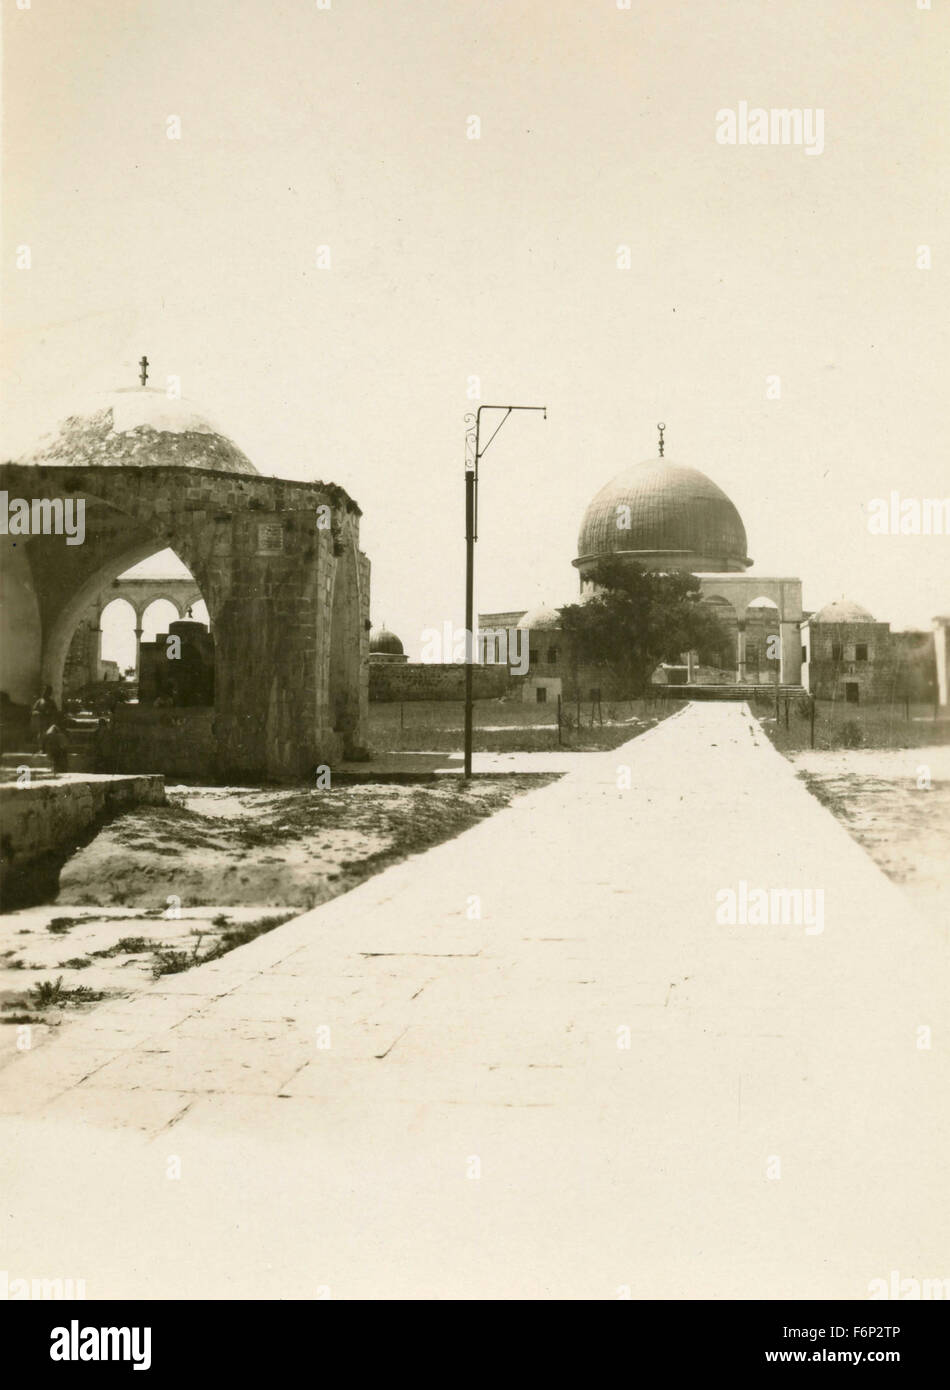 Omar Mosque, Dome of the Rock, Jerusalem - Stock Image